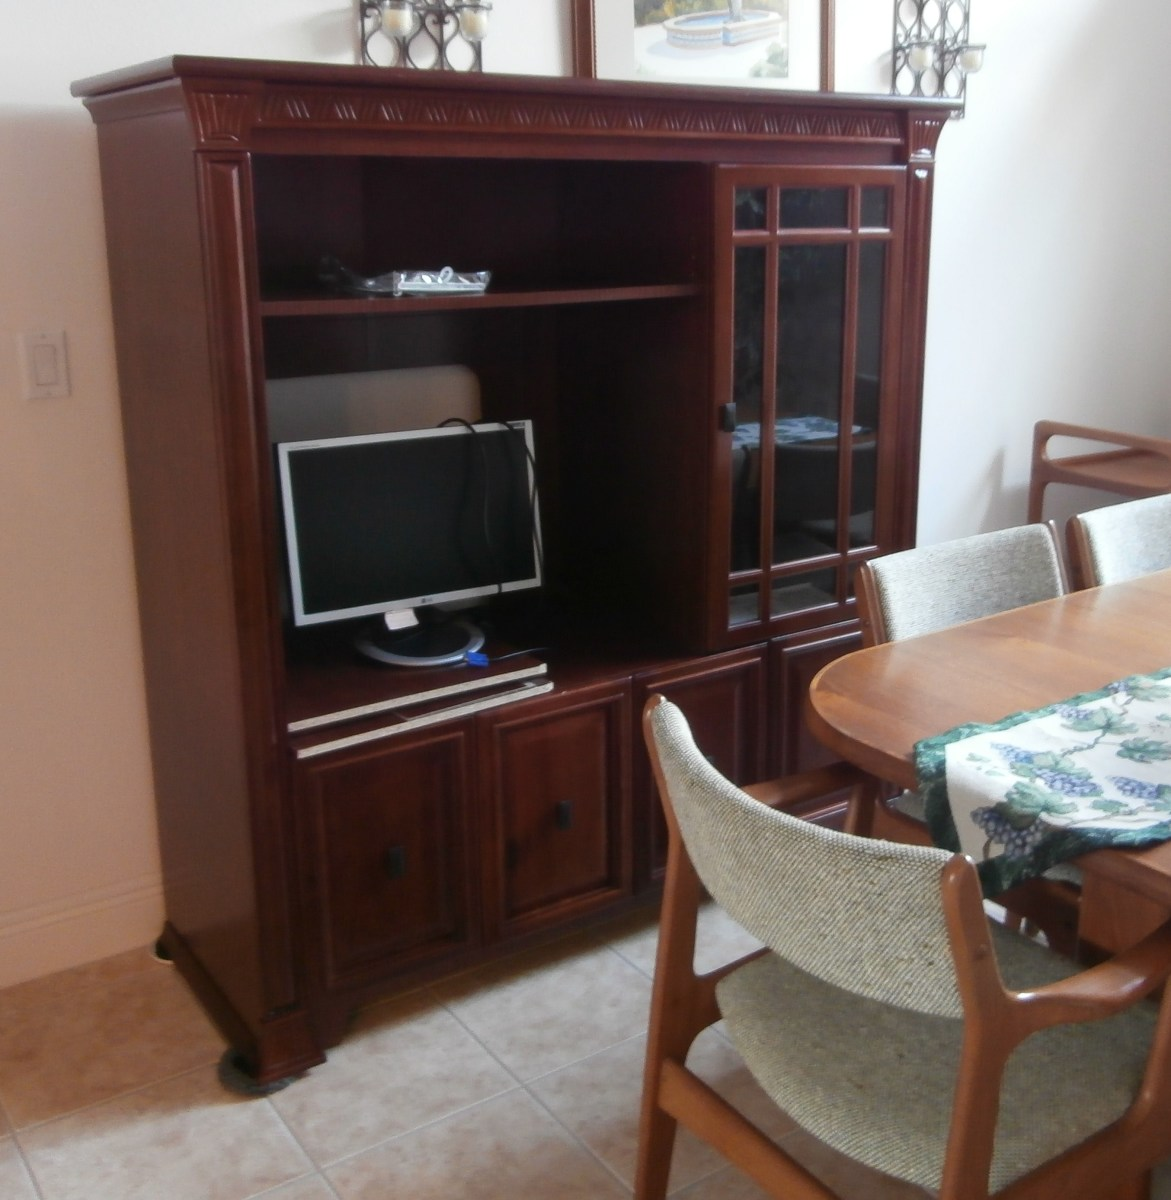 These chunky pieces of furniture fell out-of-favor when flat screen televisions no longer fit them. There are many other ways to use them.